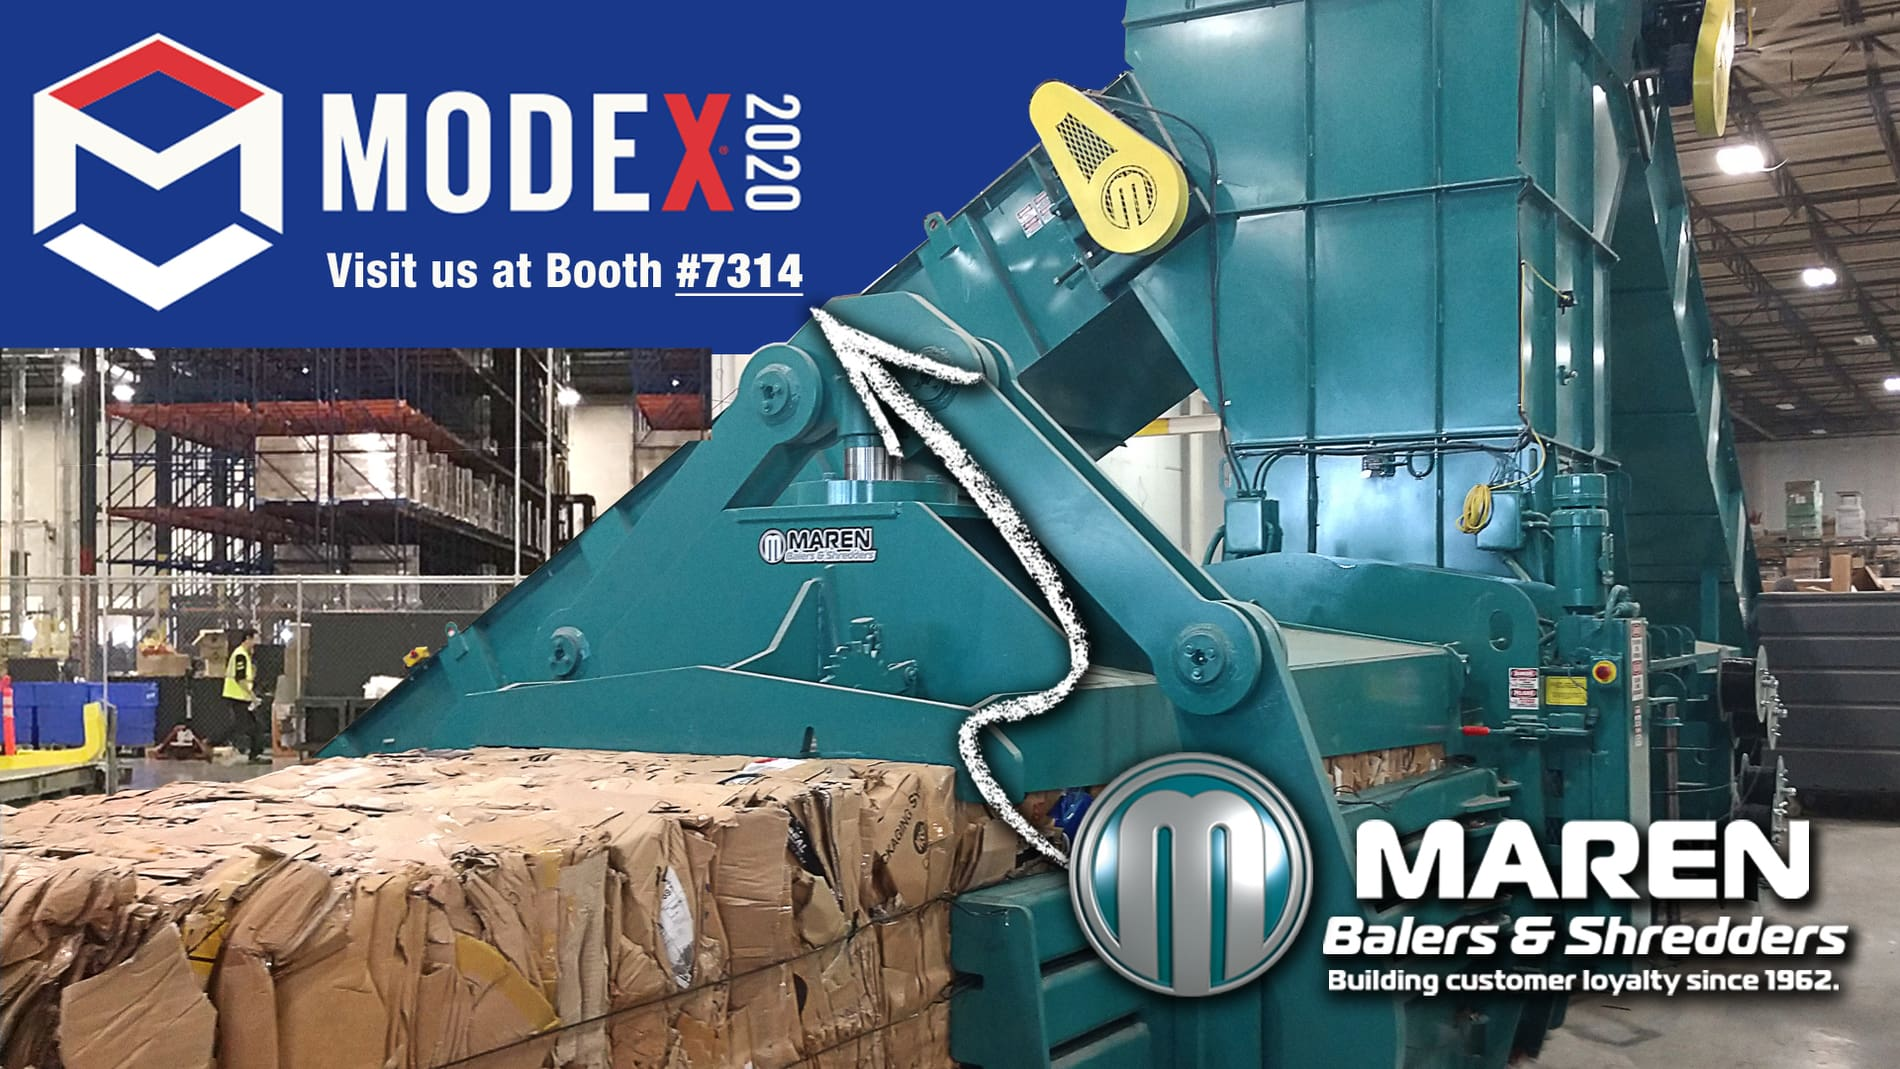 Modex 2020 Tradeshow & Conference